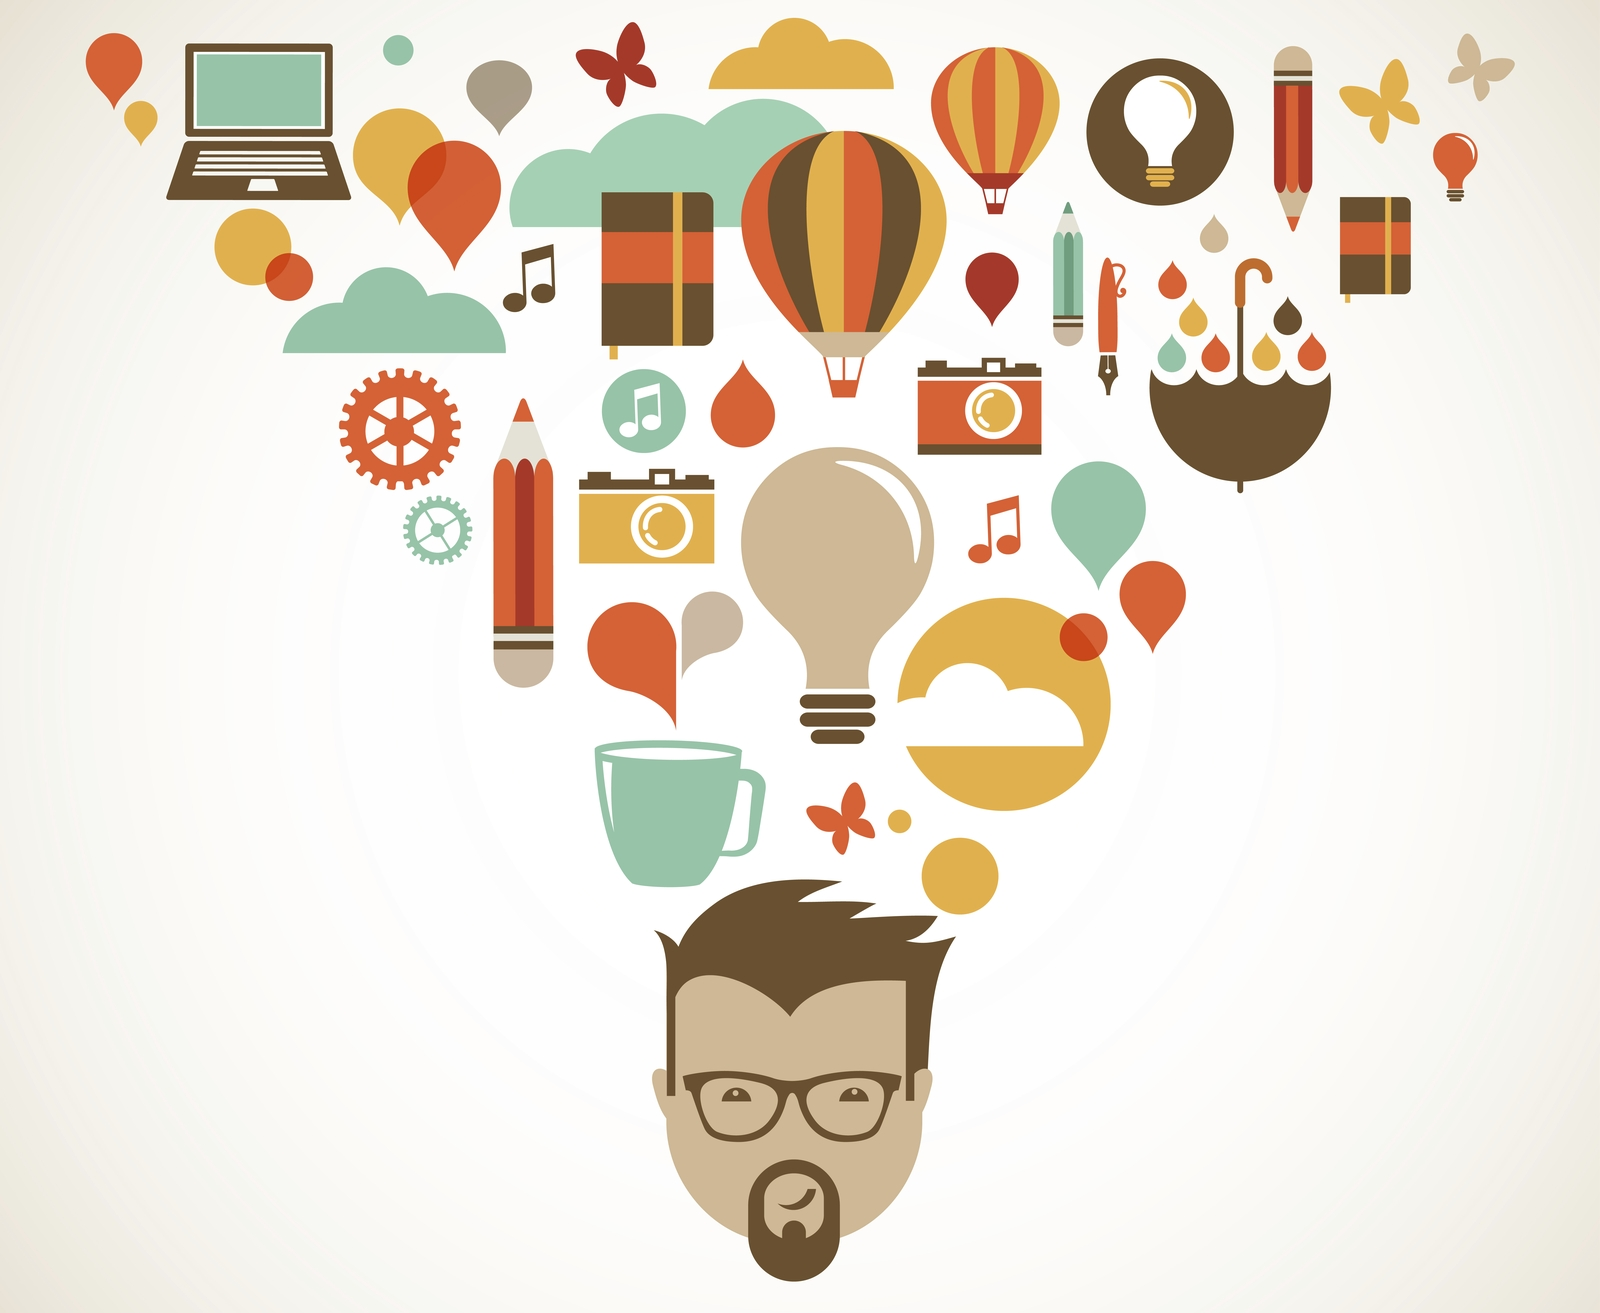 How the Best Content Marketing Operations Vet Ideas - Business 2 Community